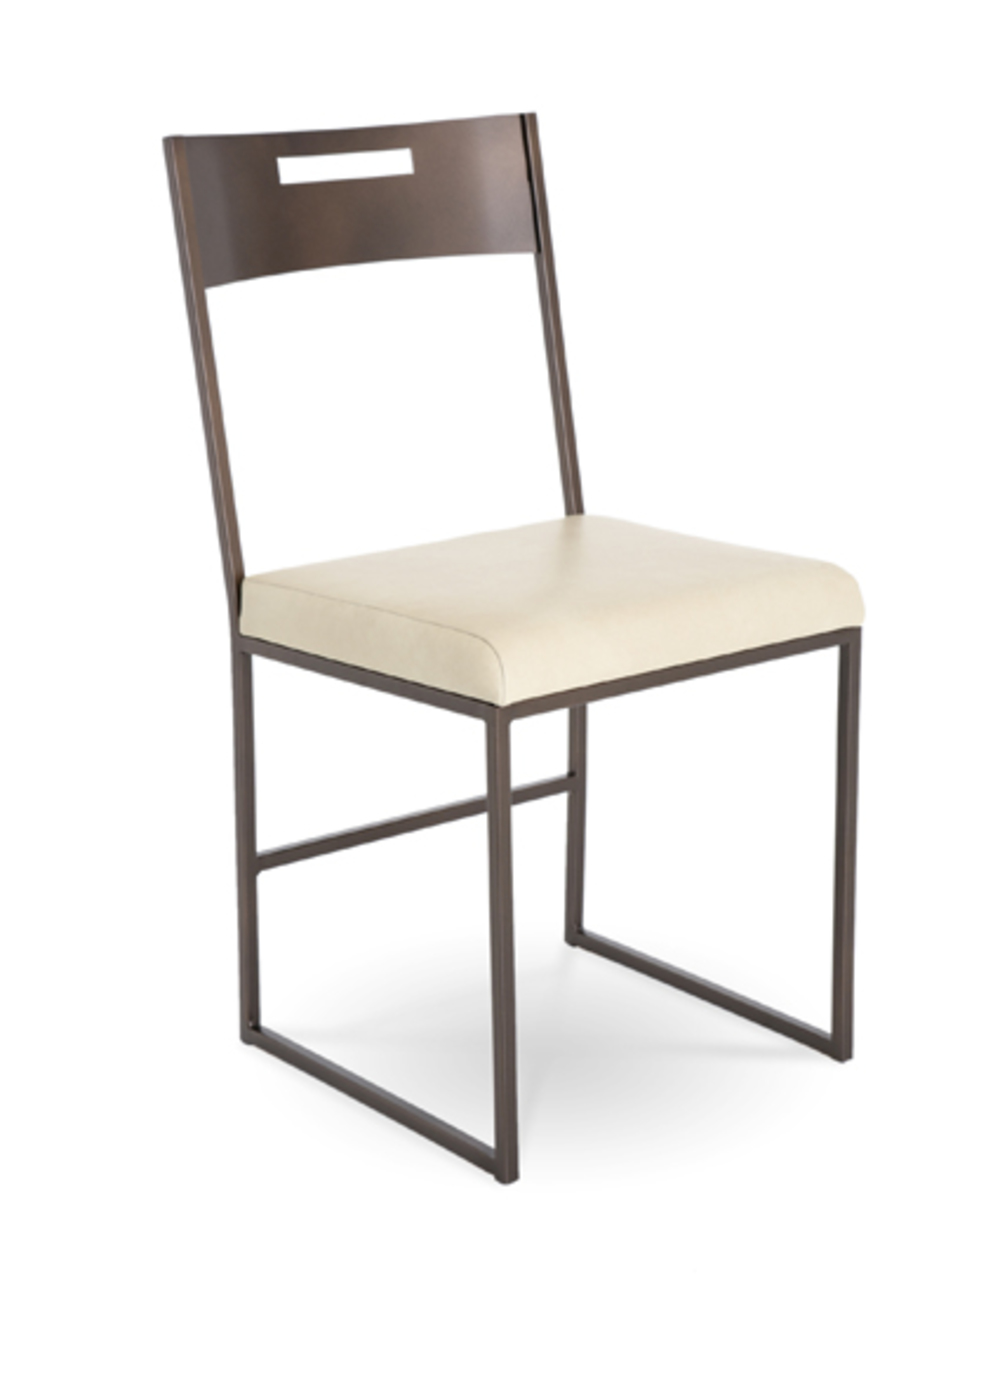 Charleston Forge - Astor Side Chair